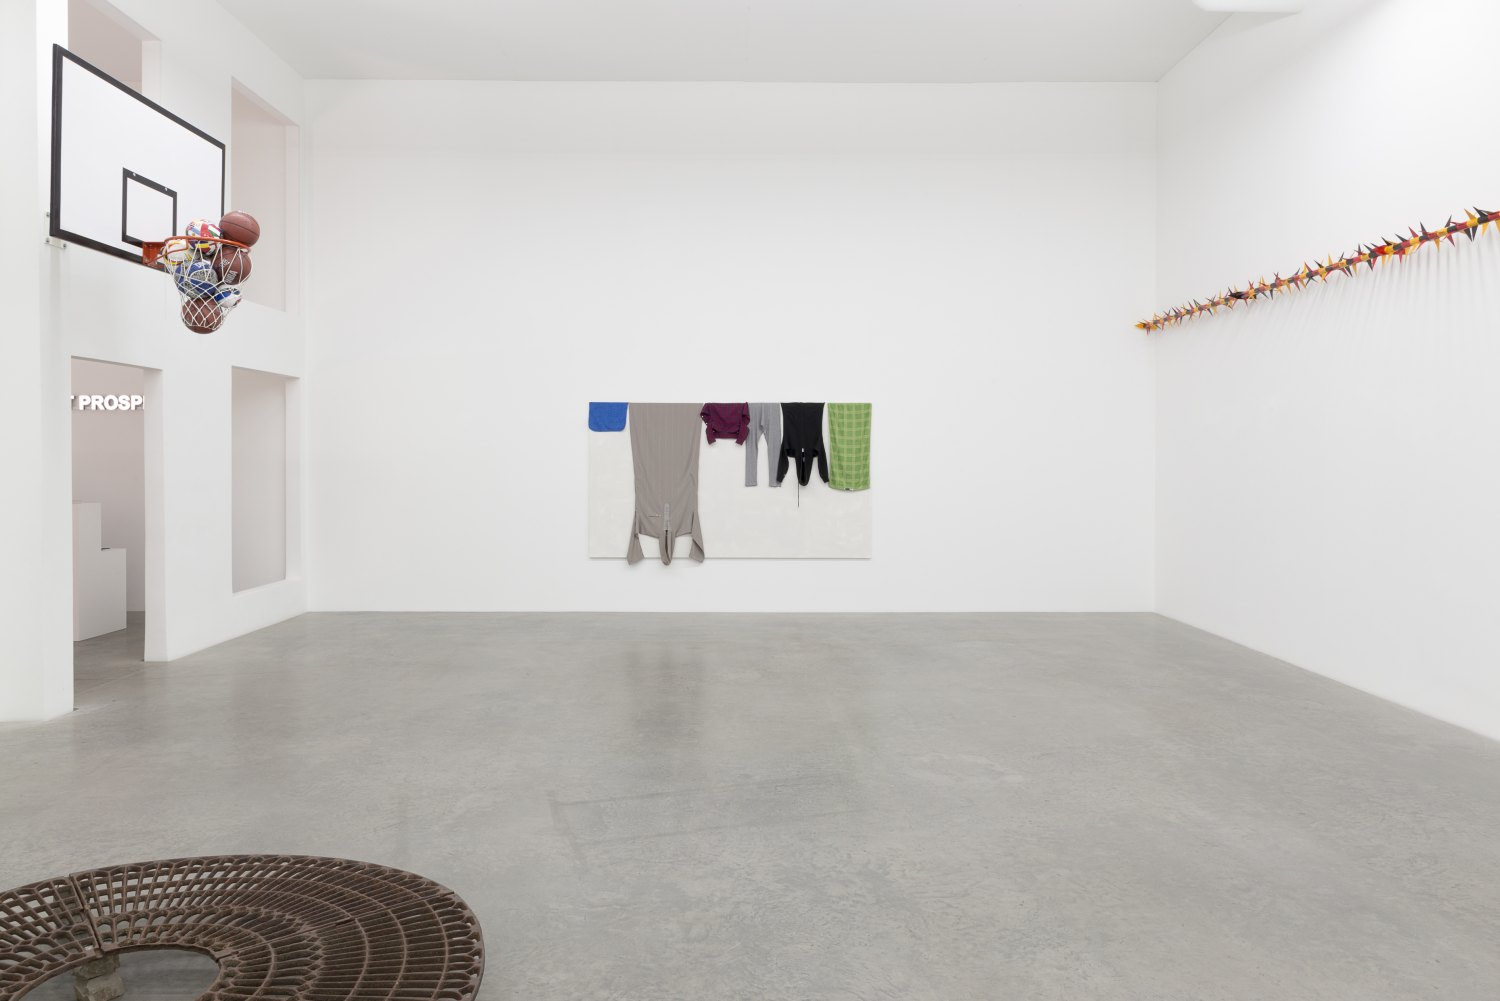 Claire Fontaine, May our enemies not prosper Installation view, Galerie Neu, Berlin 2016